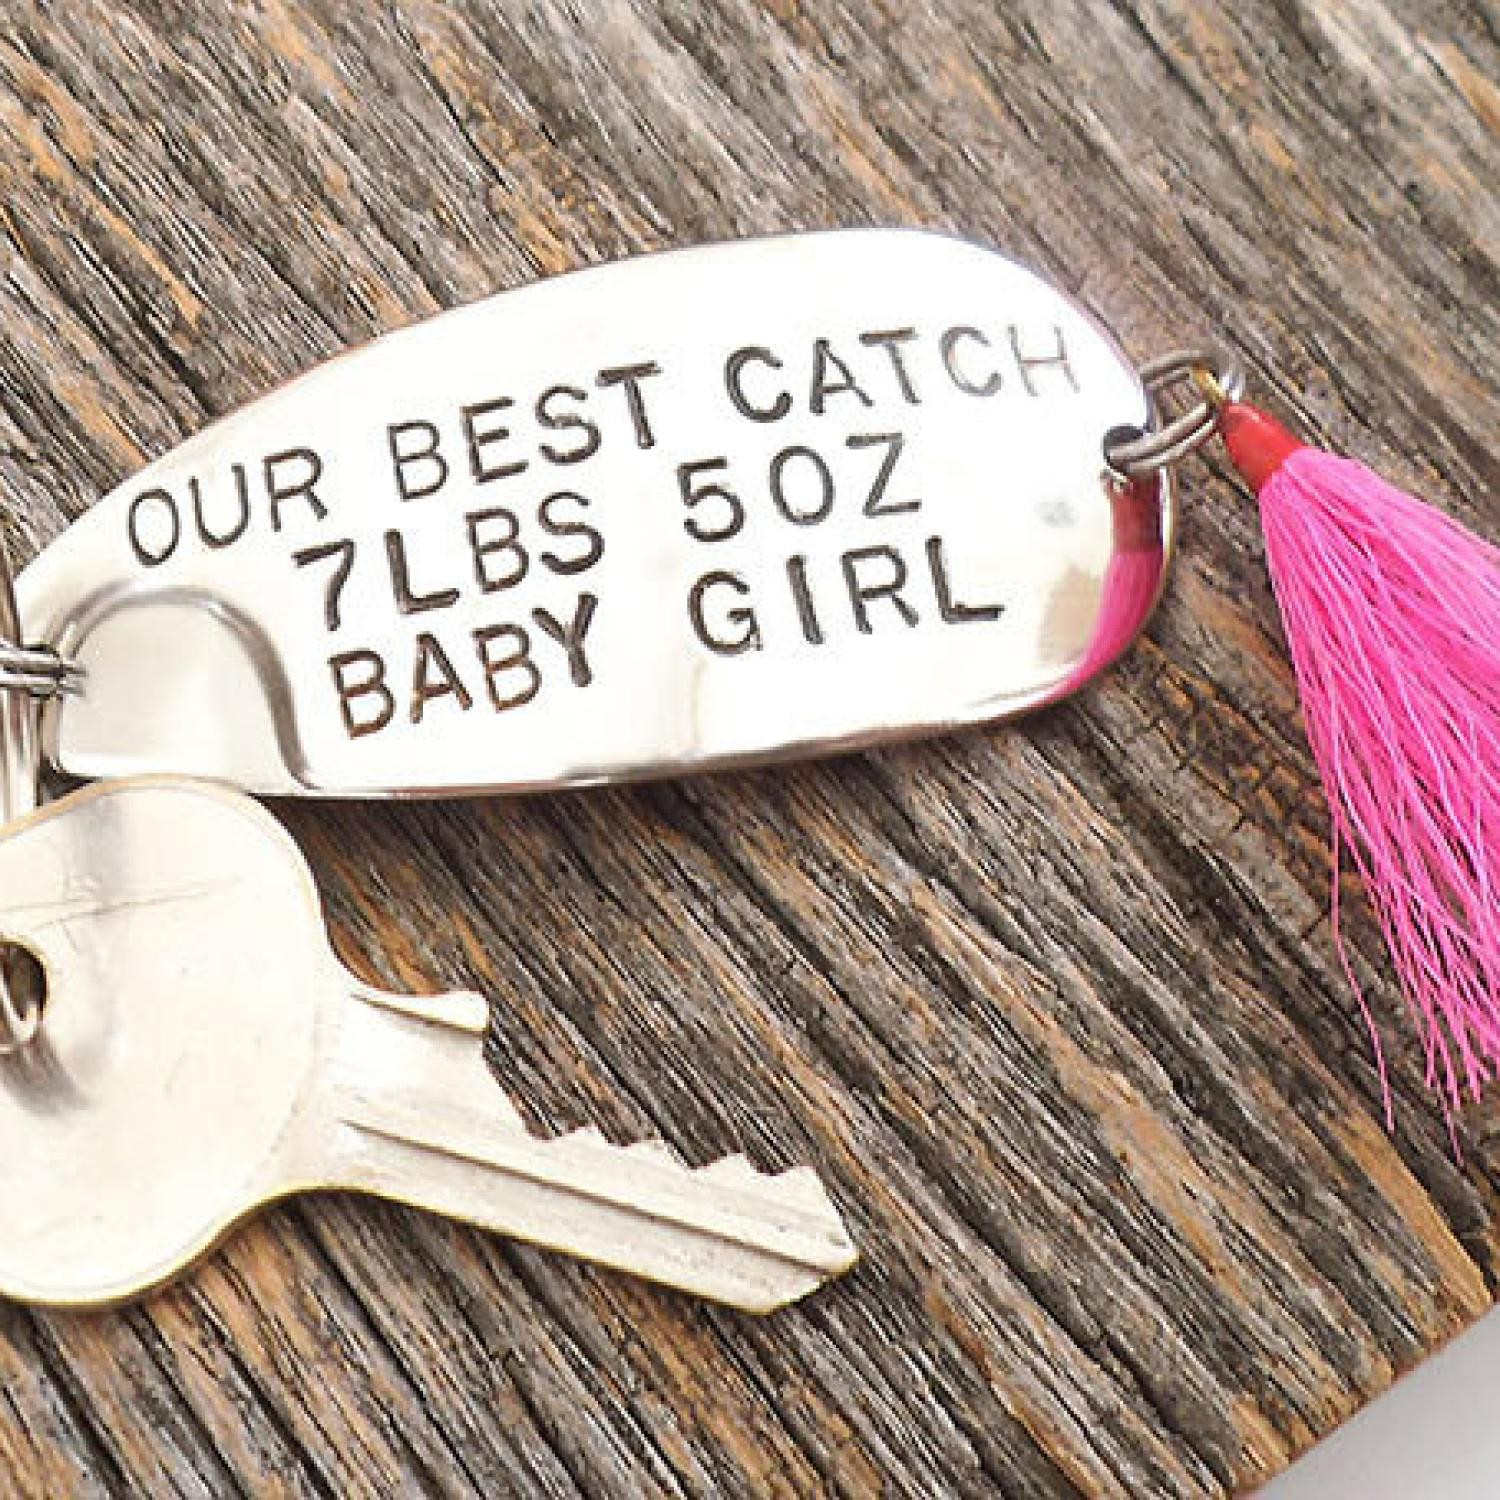 Gift Ideas For Dad From Baby Girl  10 Precious Father s Day Gift Ideas from a New Baby